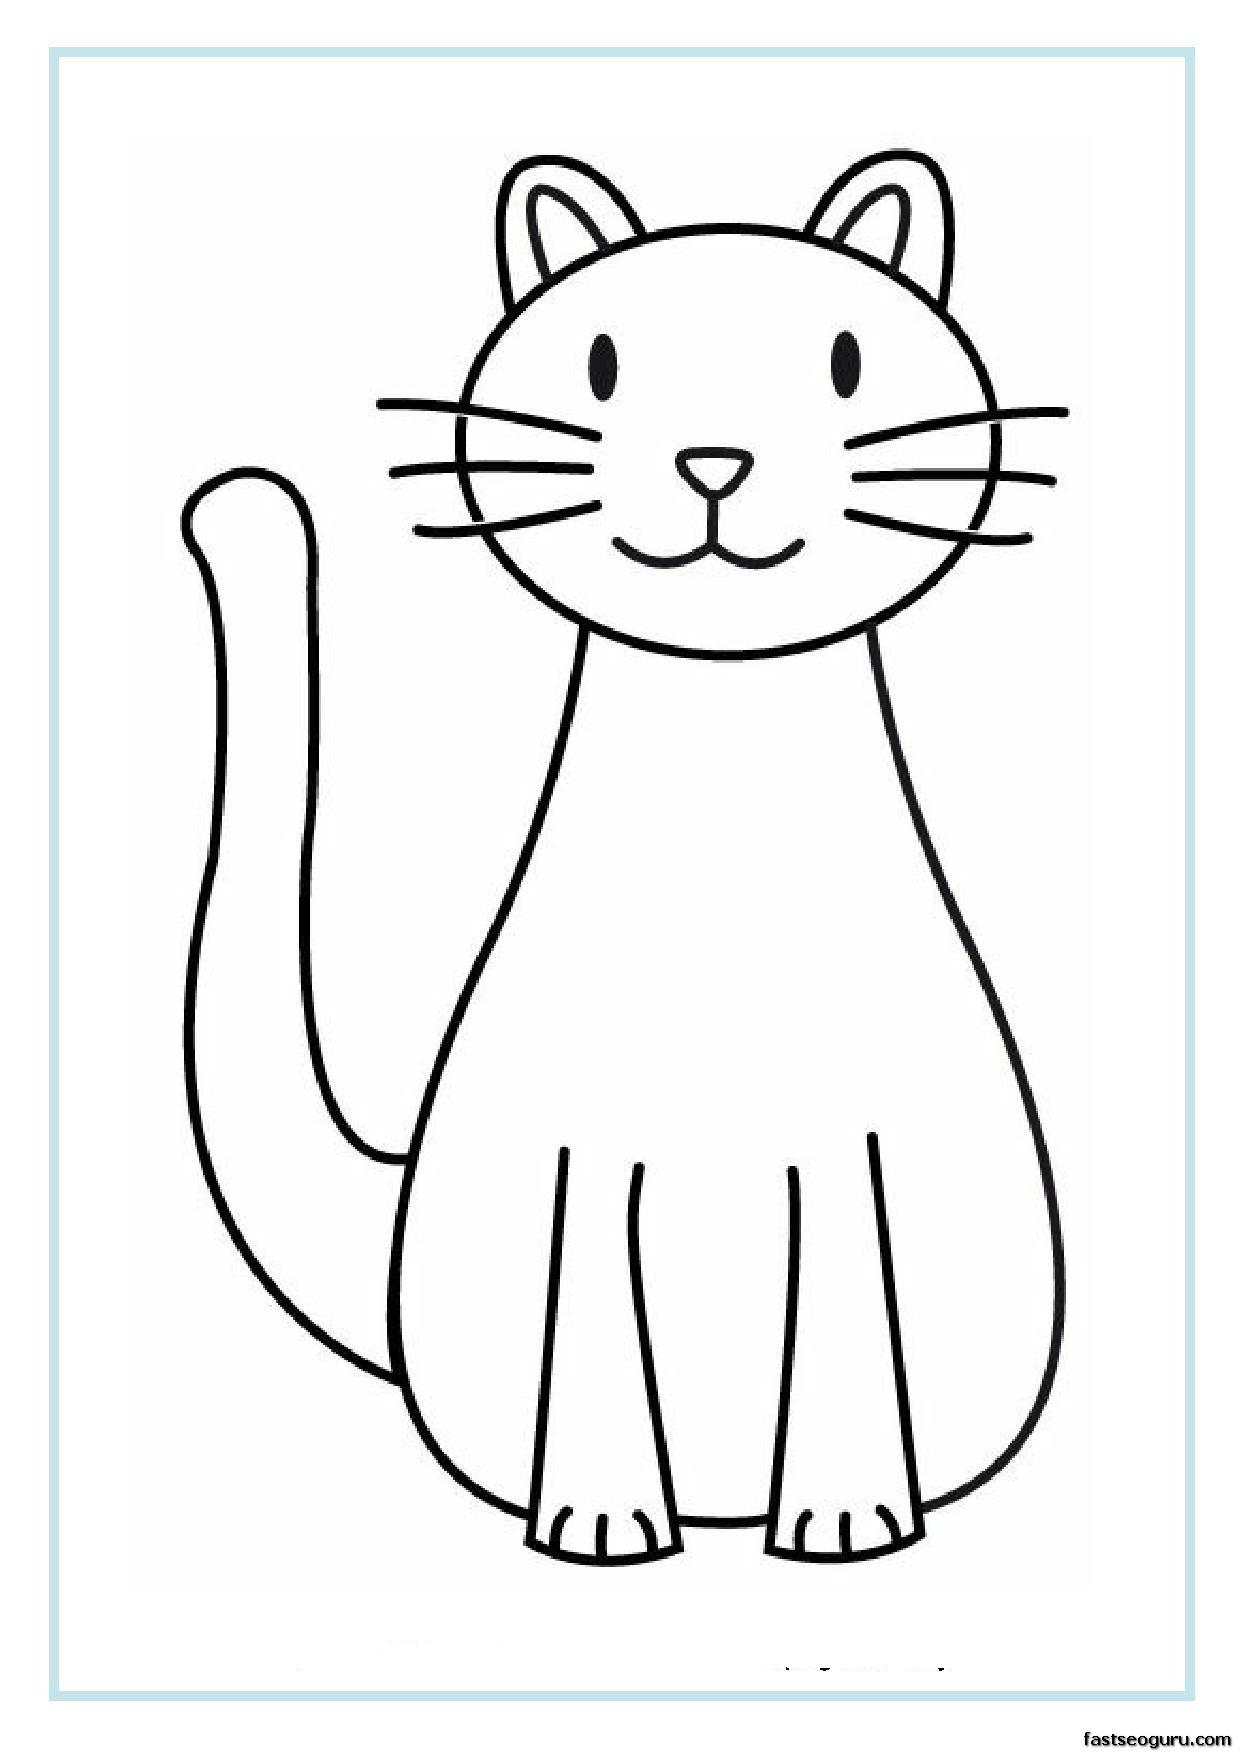 1240x1754 Simple Kitten Coloring Page Simple Colorings